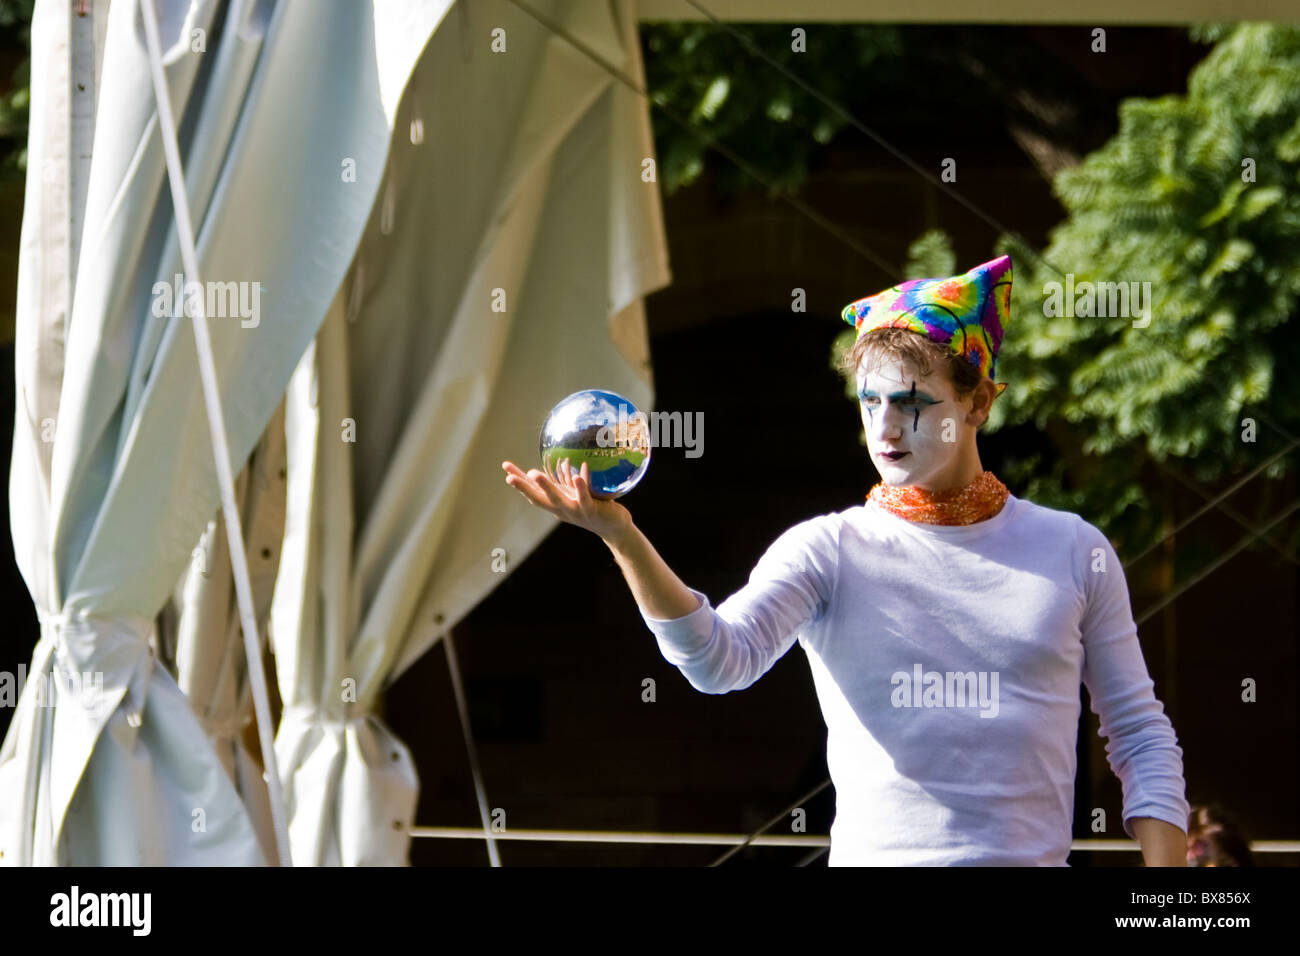 Perfomer spins a reflective ball in Sydney University open day - Stock Image